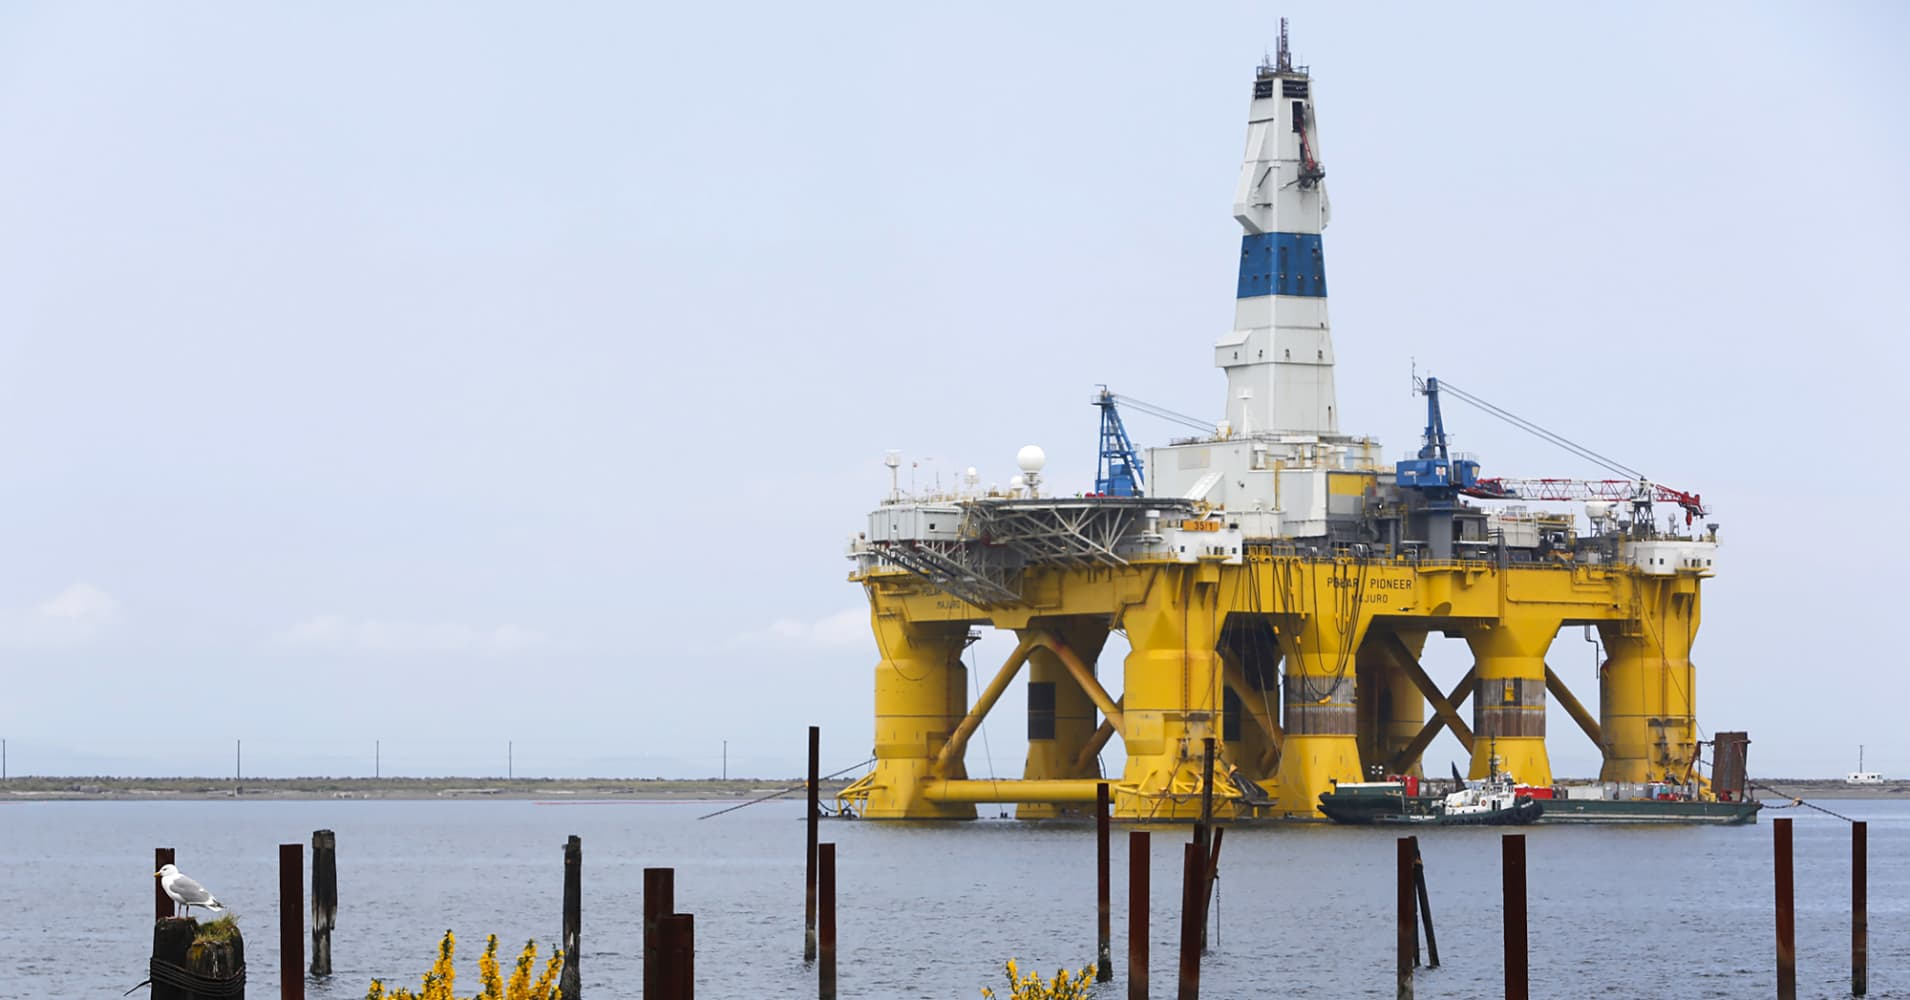 'Last man standing': Why Shell axed its Arctic push